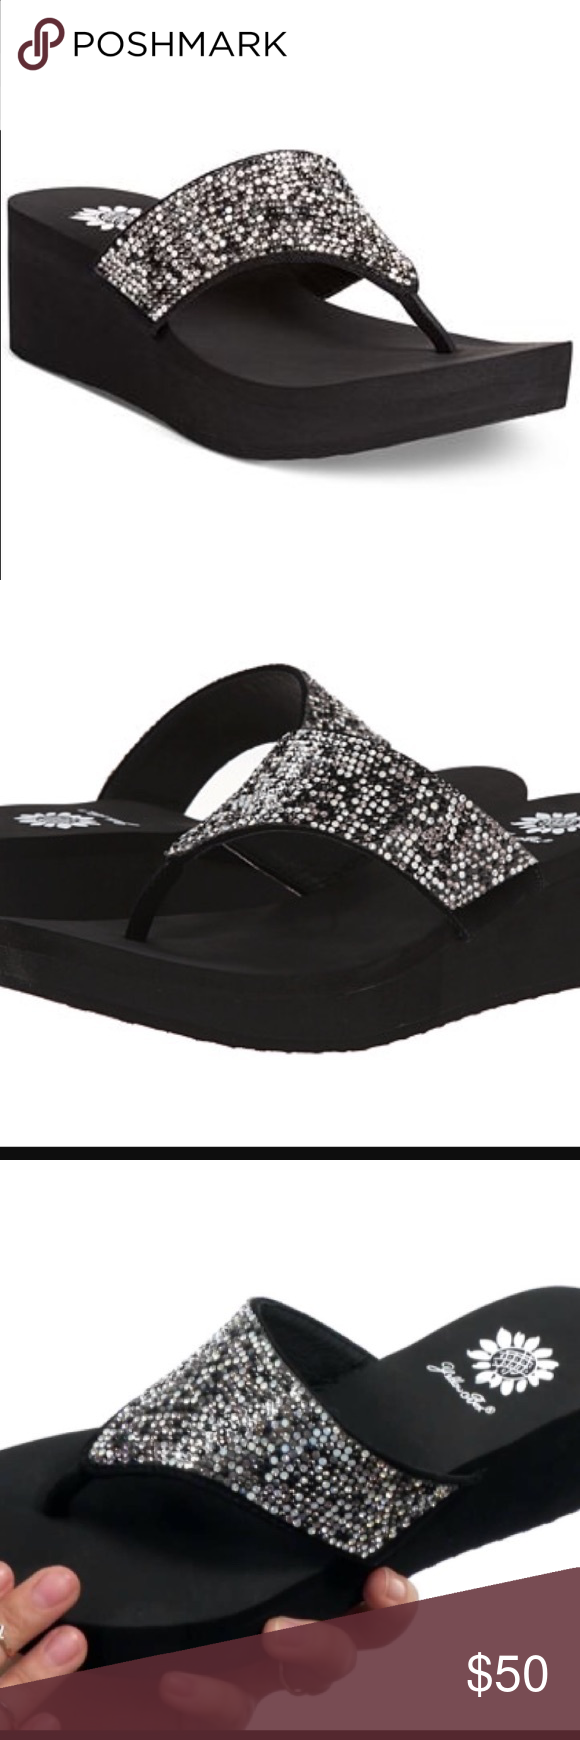 "Yellow Box Reija Wedge Thong Sandals Spice things up with the Reija wedge thong Sandals by Yellowbox. They add sparkle to all your favorite outfits in a way that's easy on your feet. Man-made upper, round open-toe wedge thong sandals, 1/2"" platform, 2"" wedge heel, man-made sole. Brand new, never worn, in box. Yellow Box Shoes Sandals"